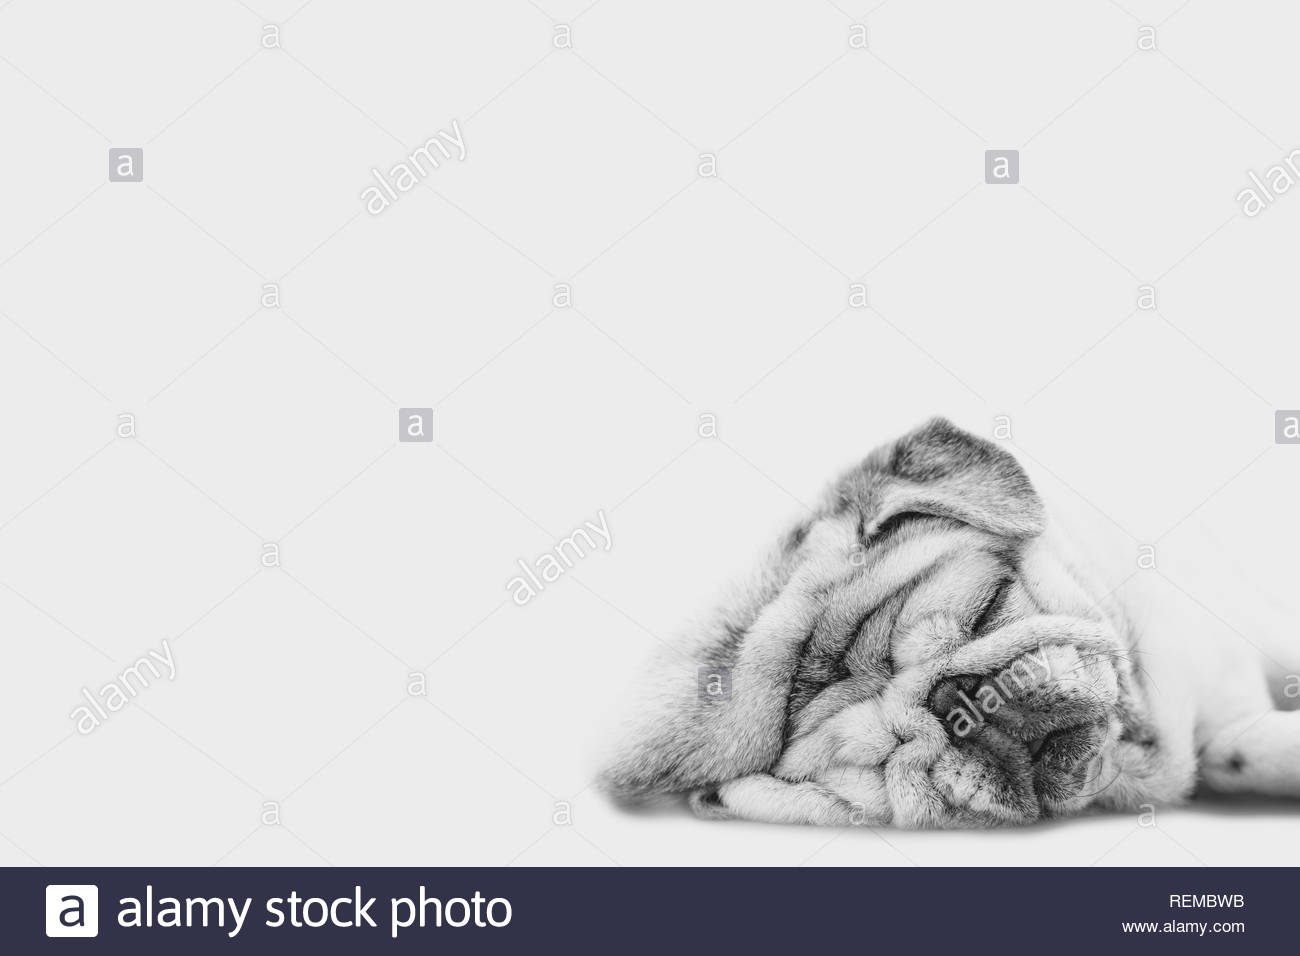 Close Up Face Headshot of Pug dog. Fat dog with many wrinkles on his face. Dog with funny face. - Stock Image